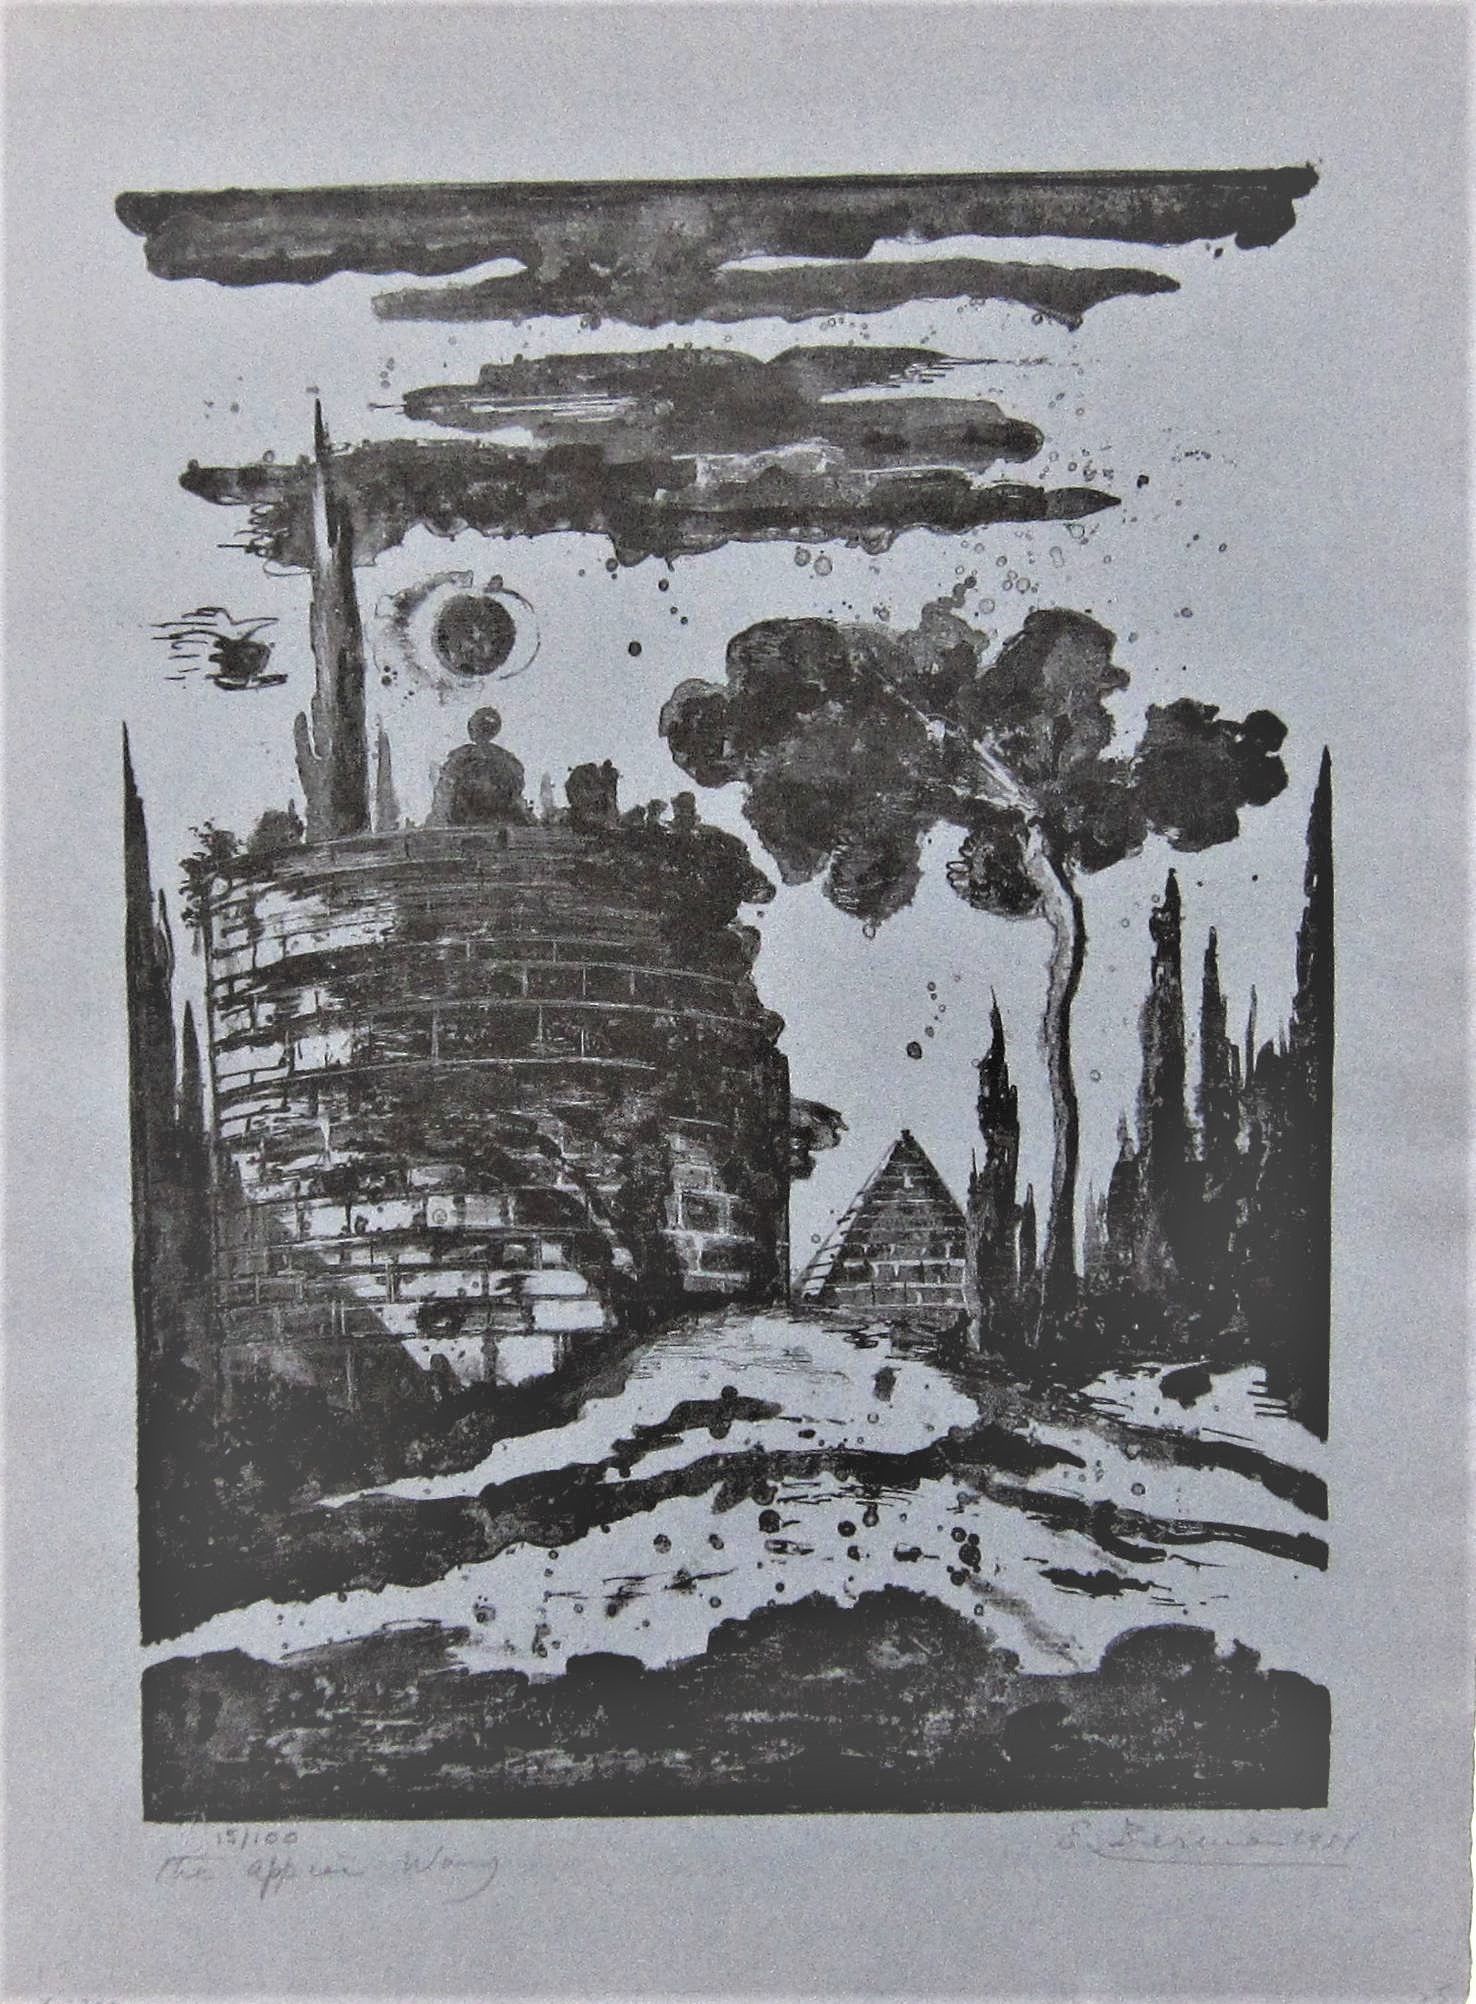 EUGENE BERMAN [1899-1972]. The Appian Way, 1951. lithograph, edition of 100; signed and dated in